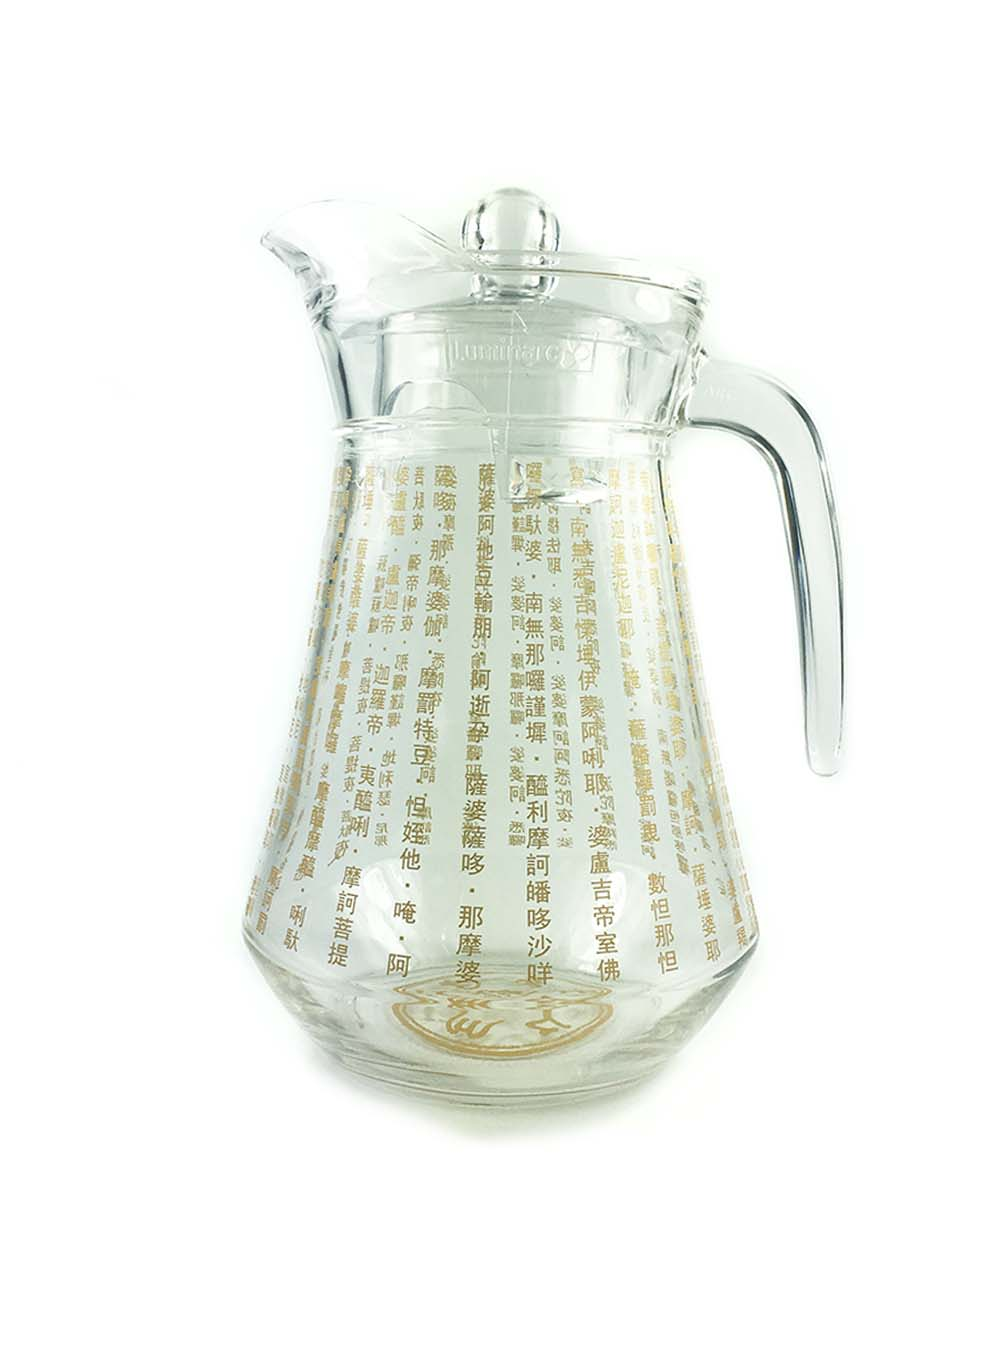 the great compassion mantra glass water jug ren ting online. Black Bedroom Furniture Sets. Home Design Ideas